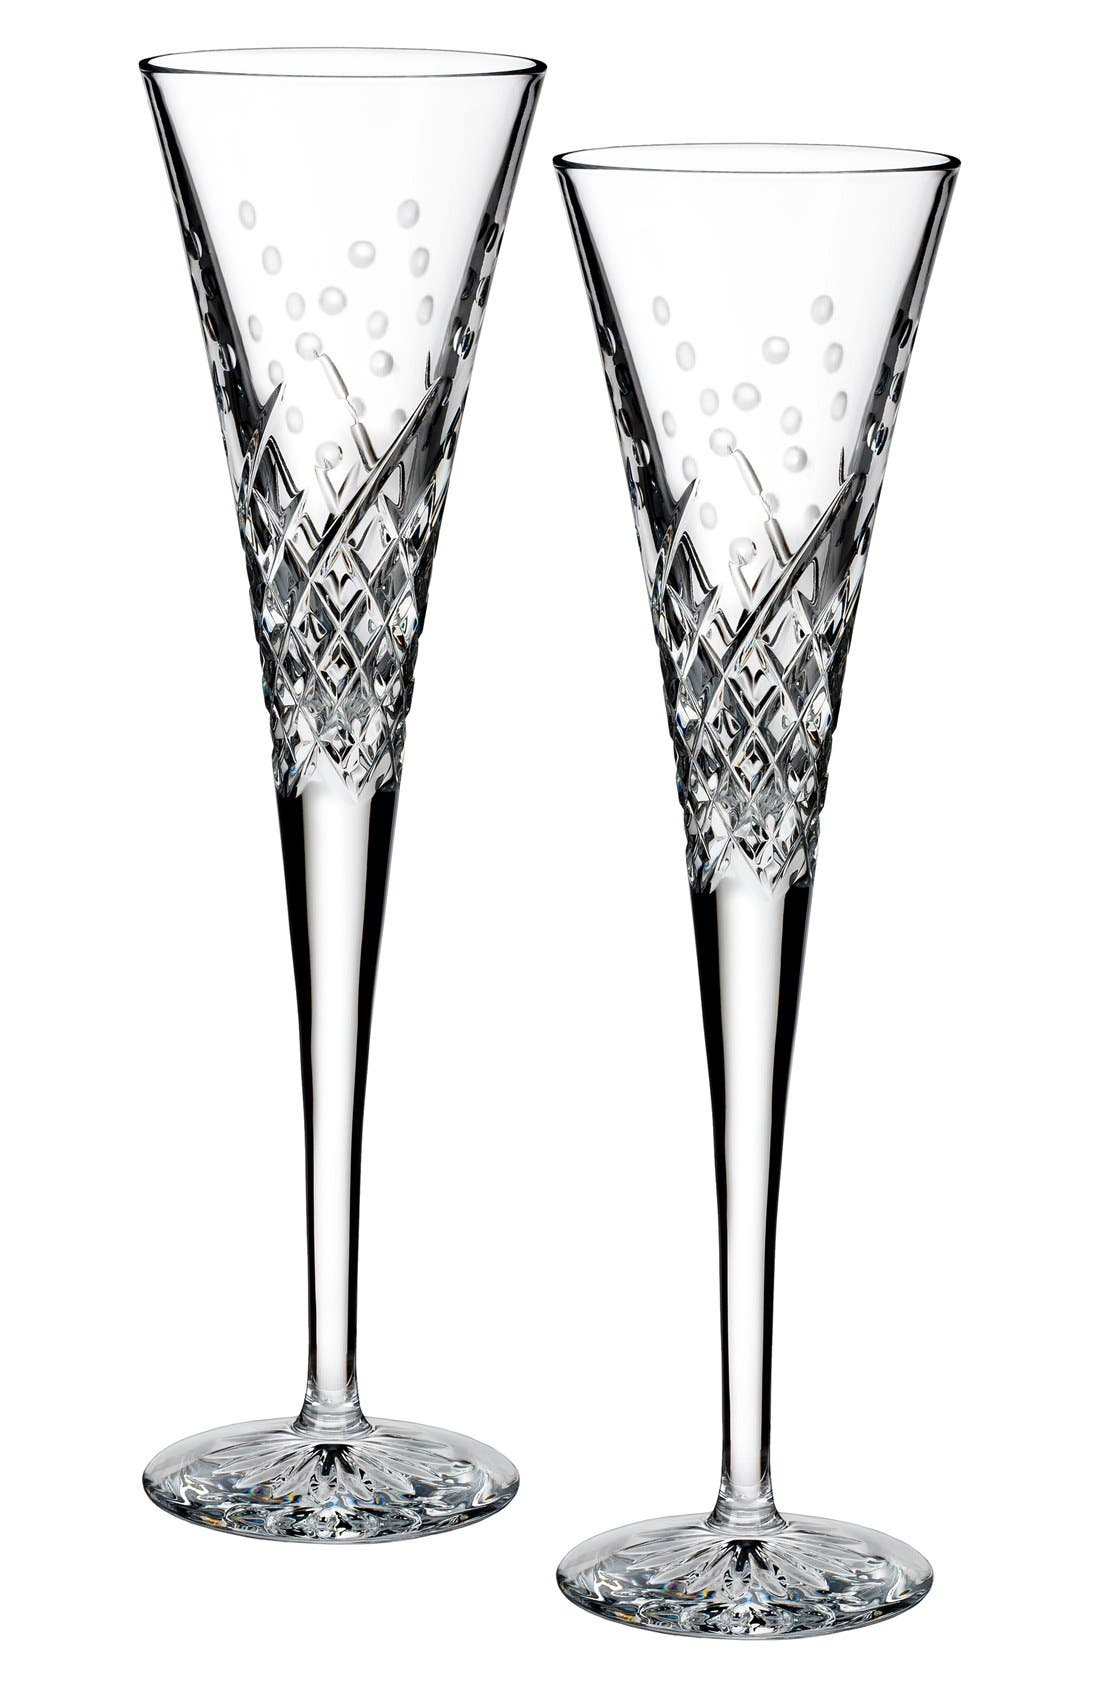 Alternate Image 1 Selected - Waterford 'Happy Celebrations' Lead Crystal Champagne Flutes (Set of 2)